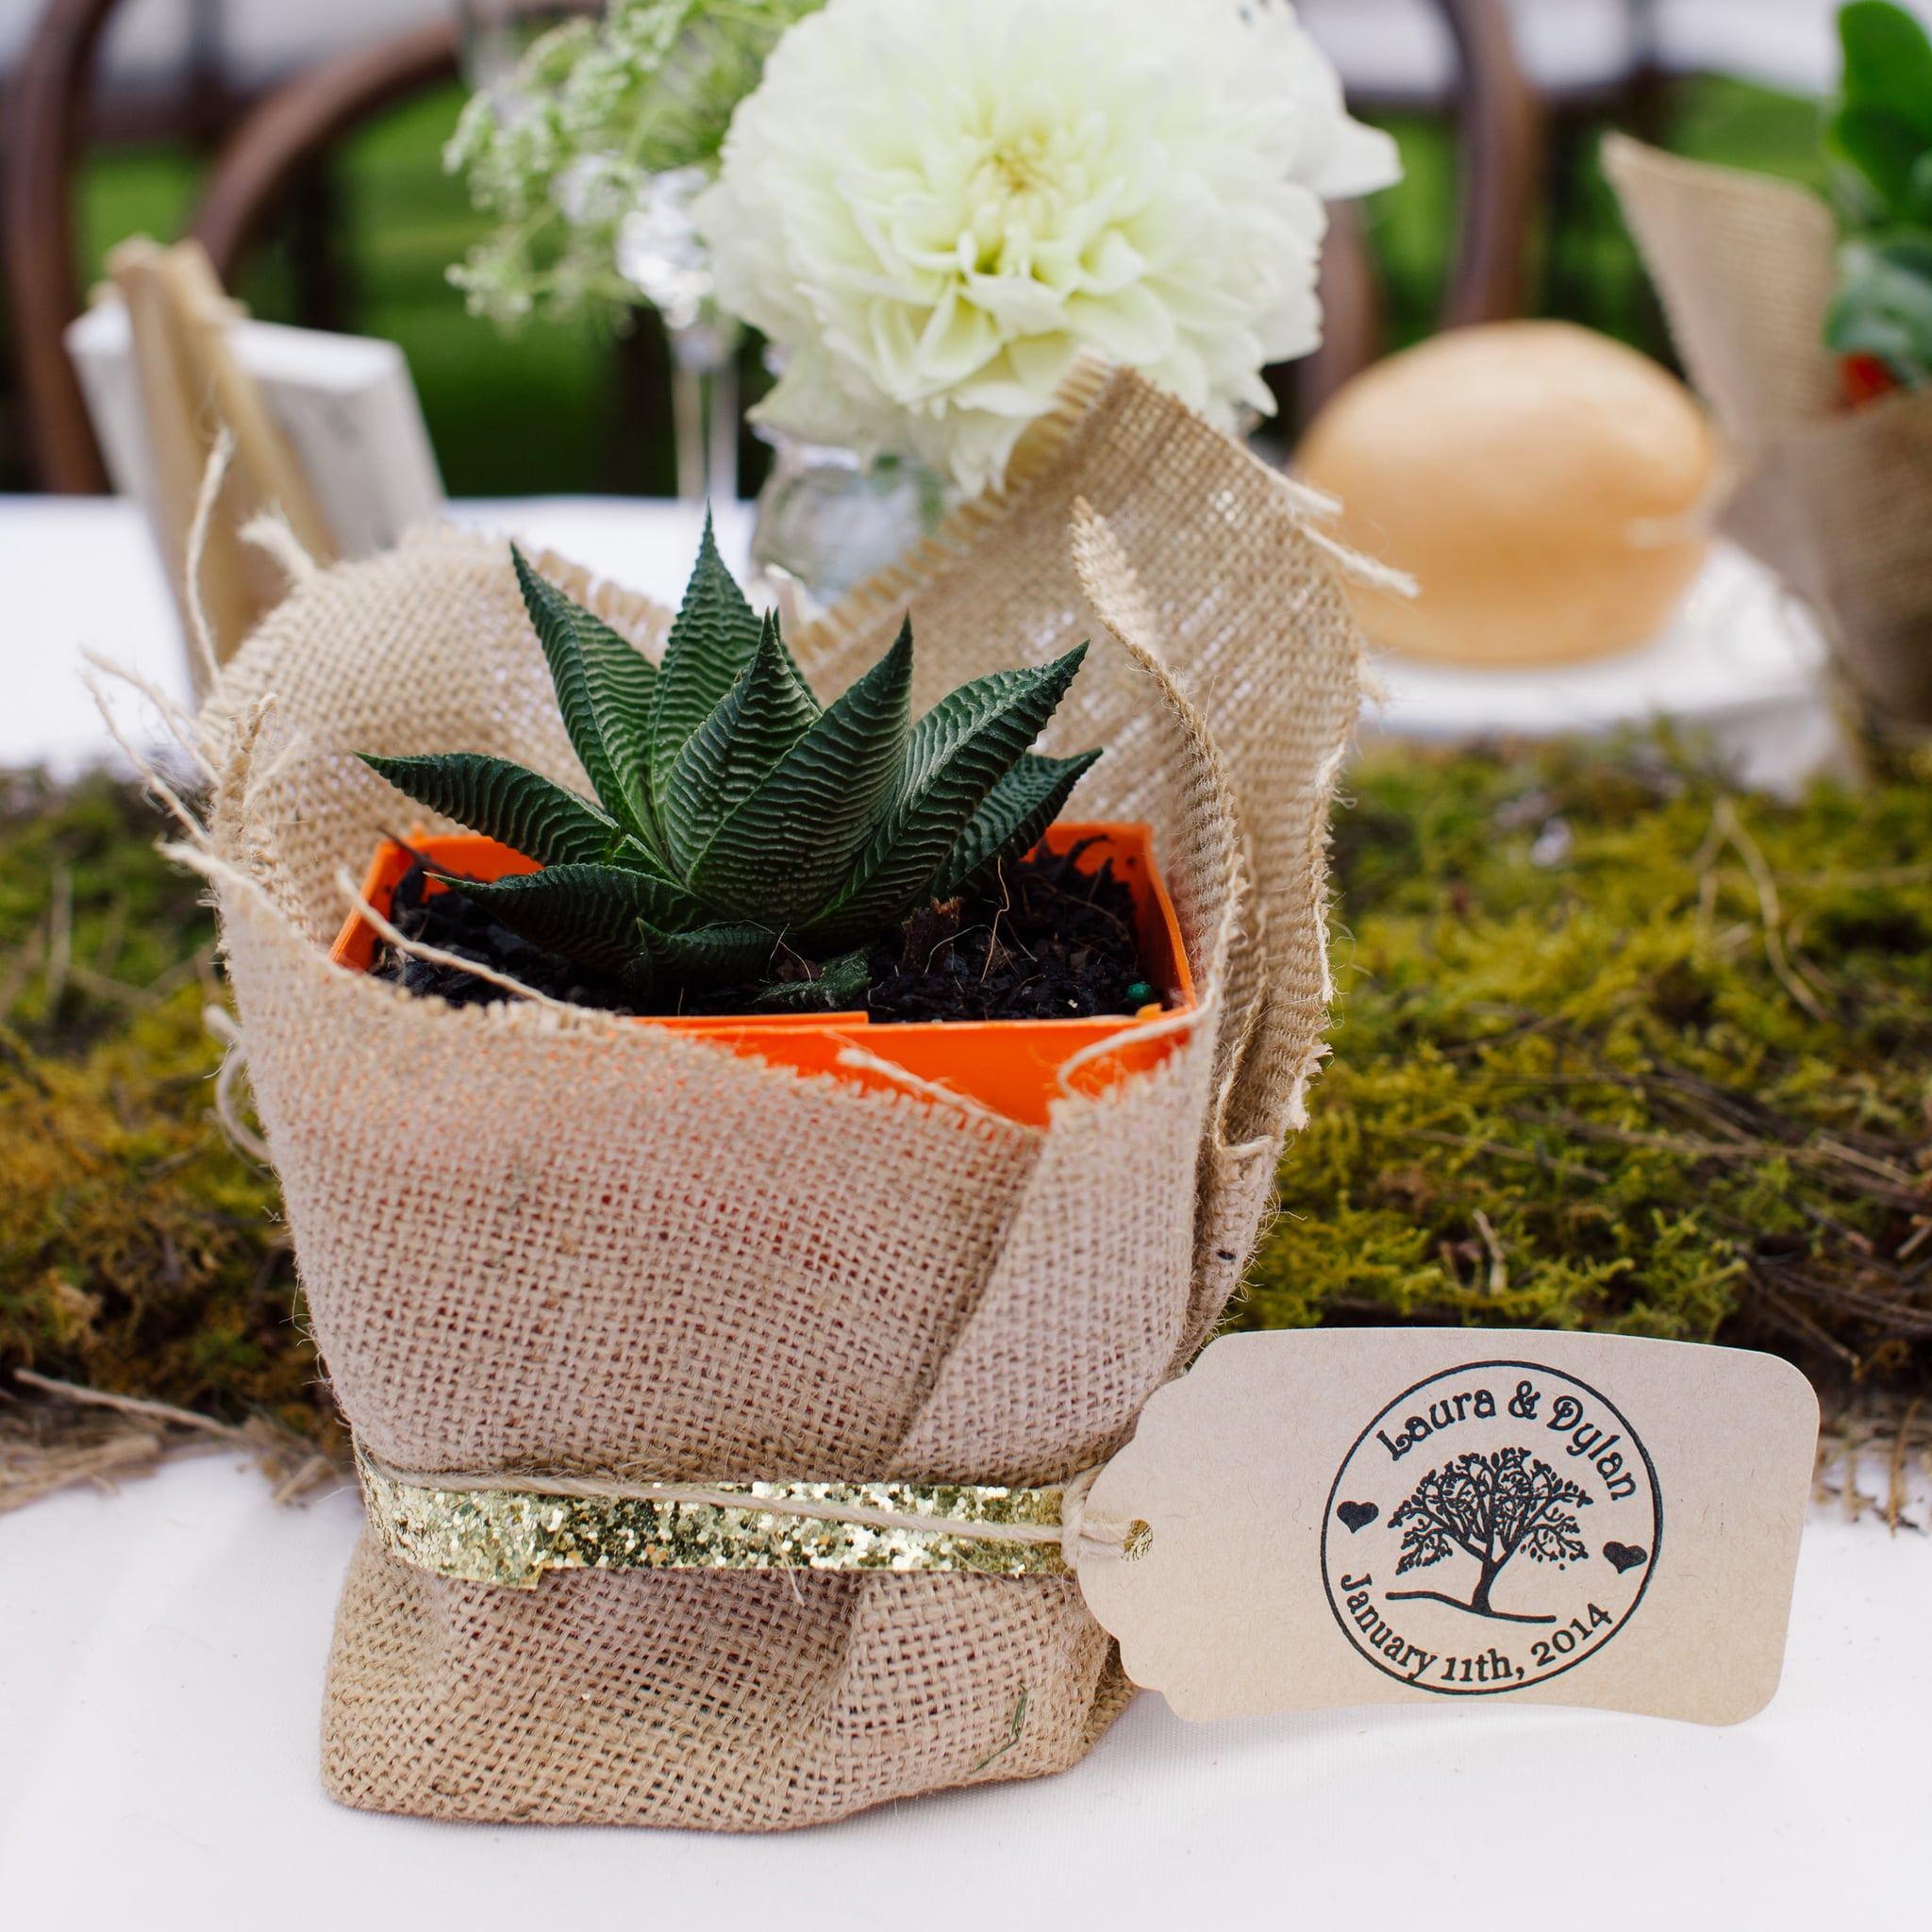 Wedding favors people will use popsugar smart living junglespirit Gallery